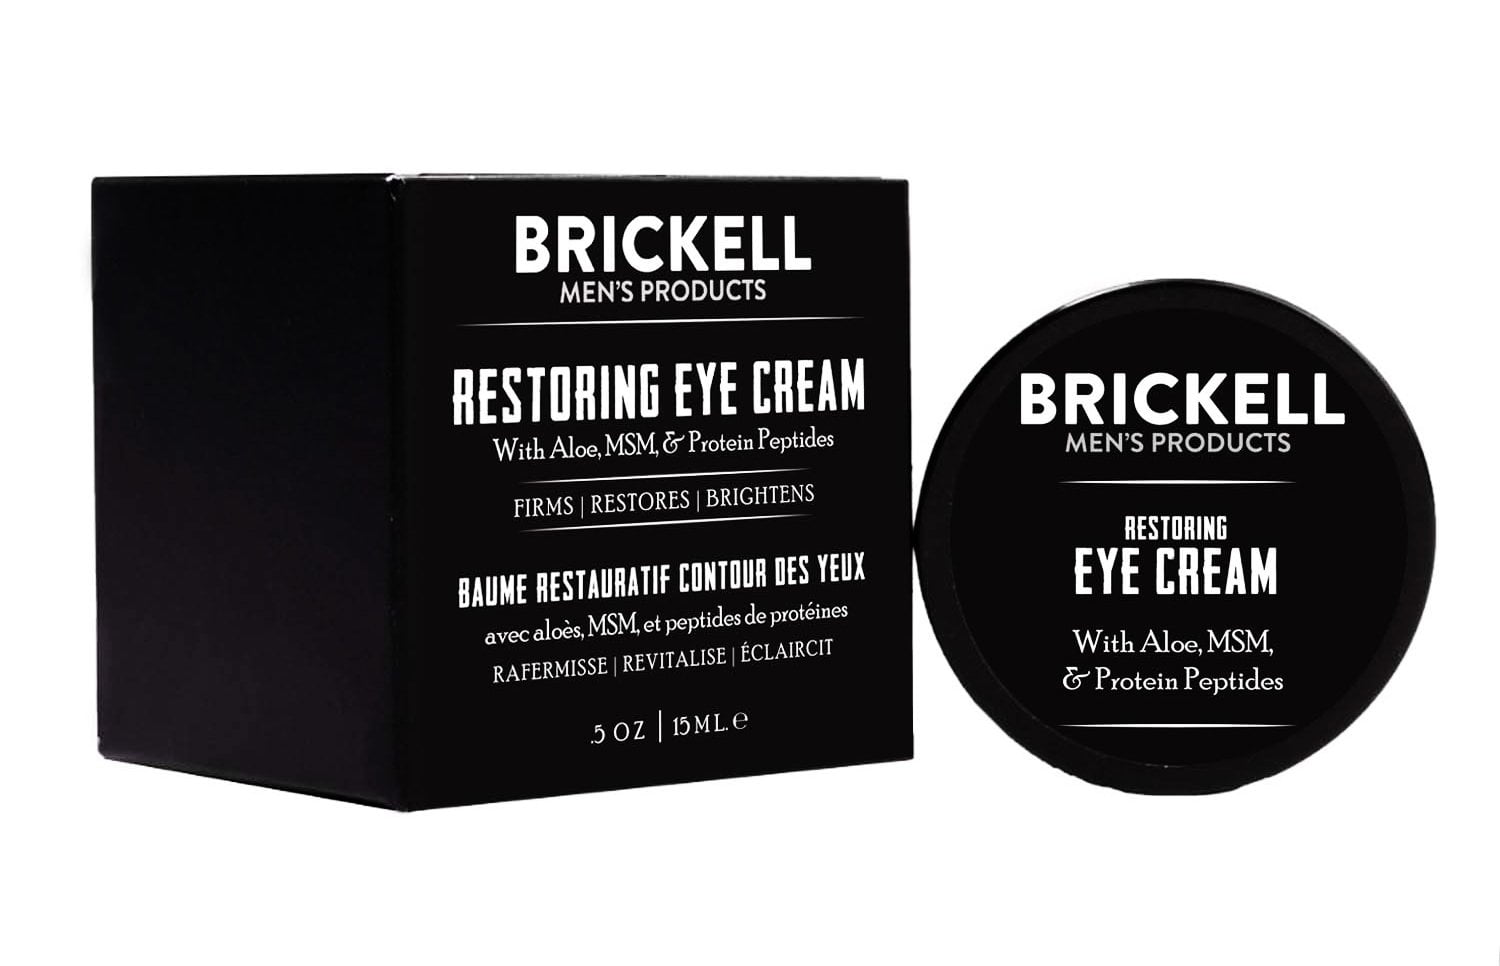 Brickell Men's Restoring Eye Cream